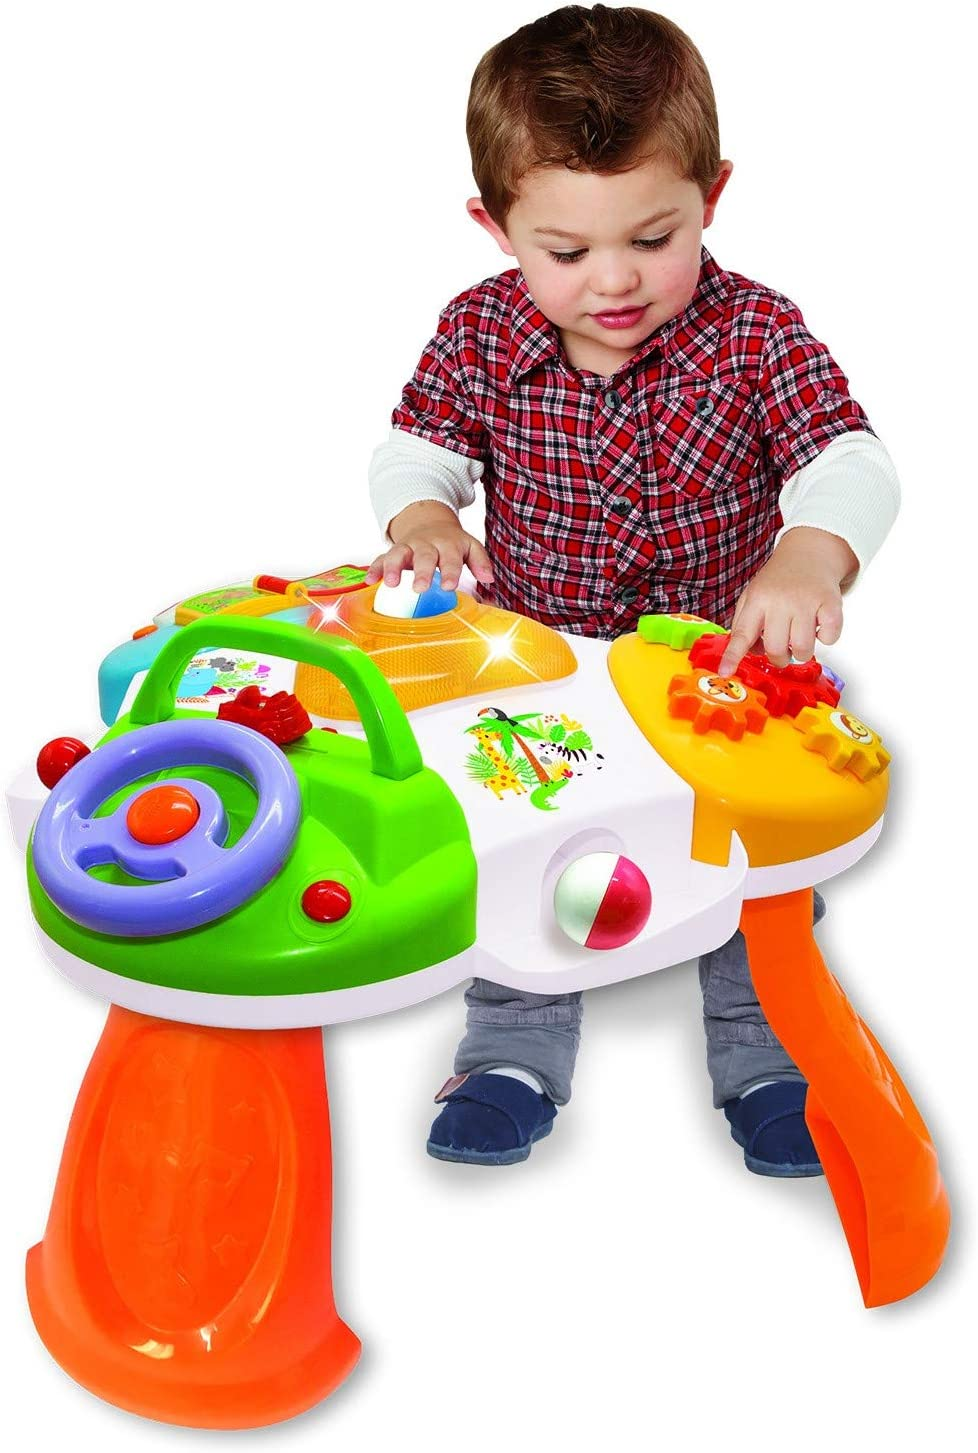 Kiddieland Delight and Discover Activity Table